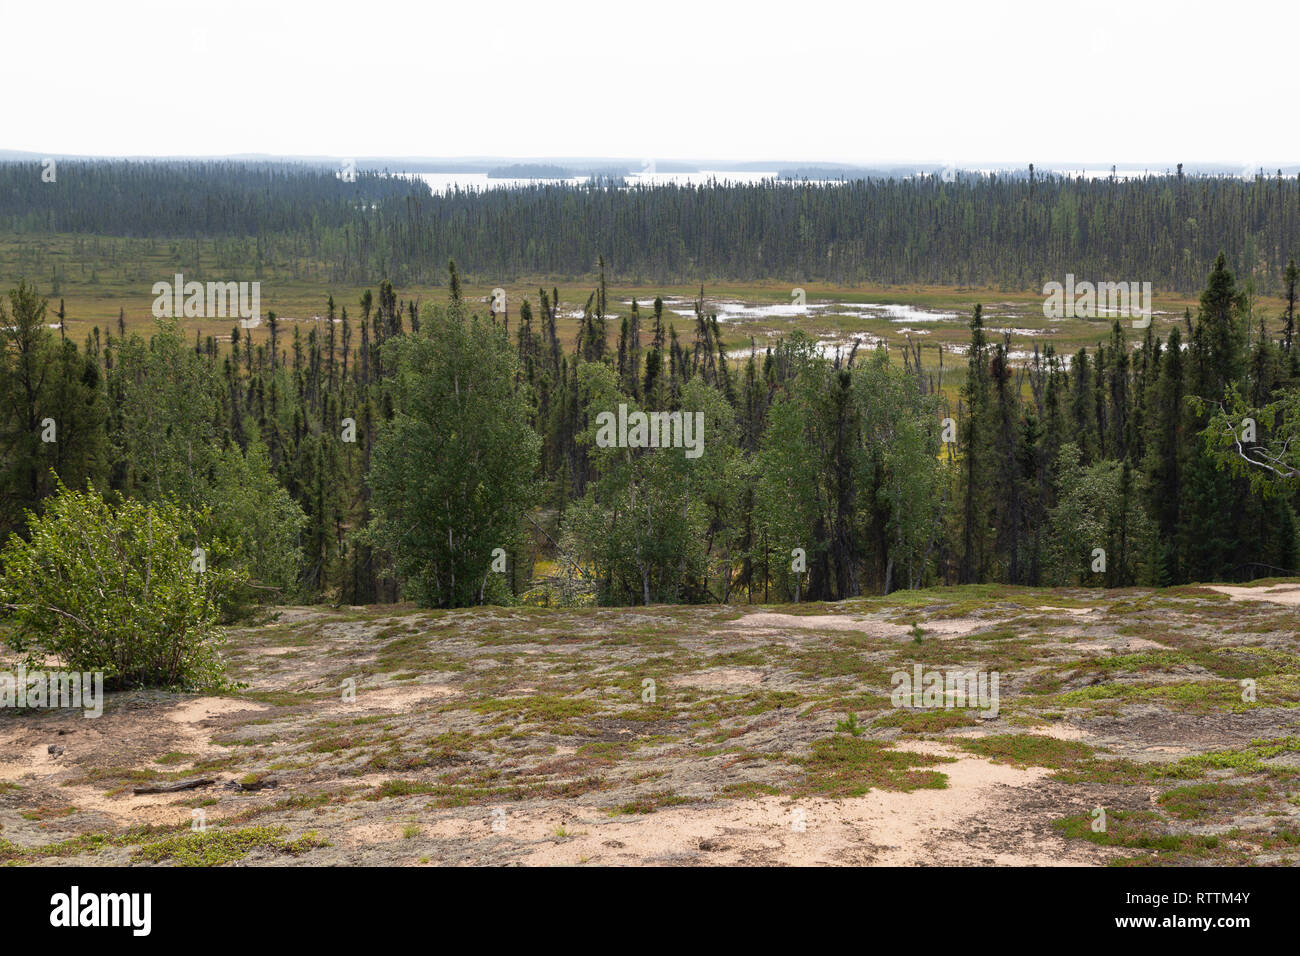 Forest seen from an esker in northern Manitoba, Canada. The esker was formed by subglacial desposits during the Ice Age. - Stock Image